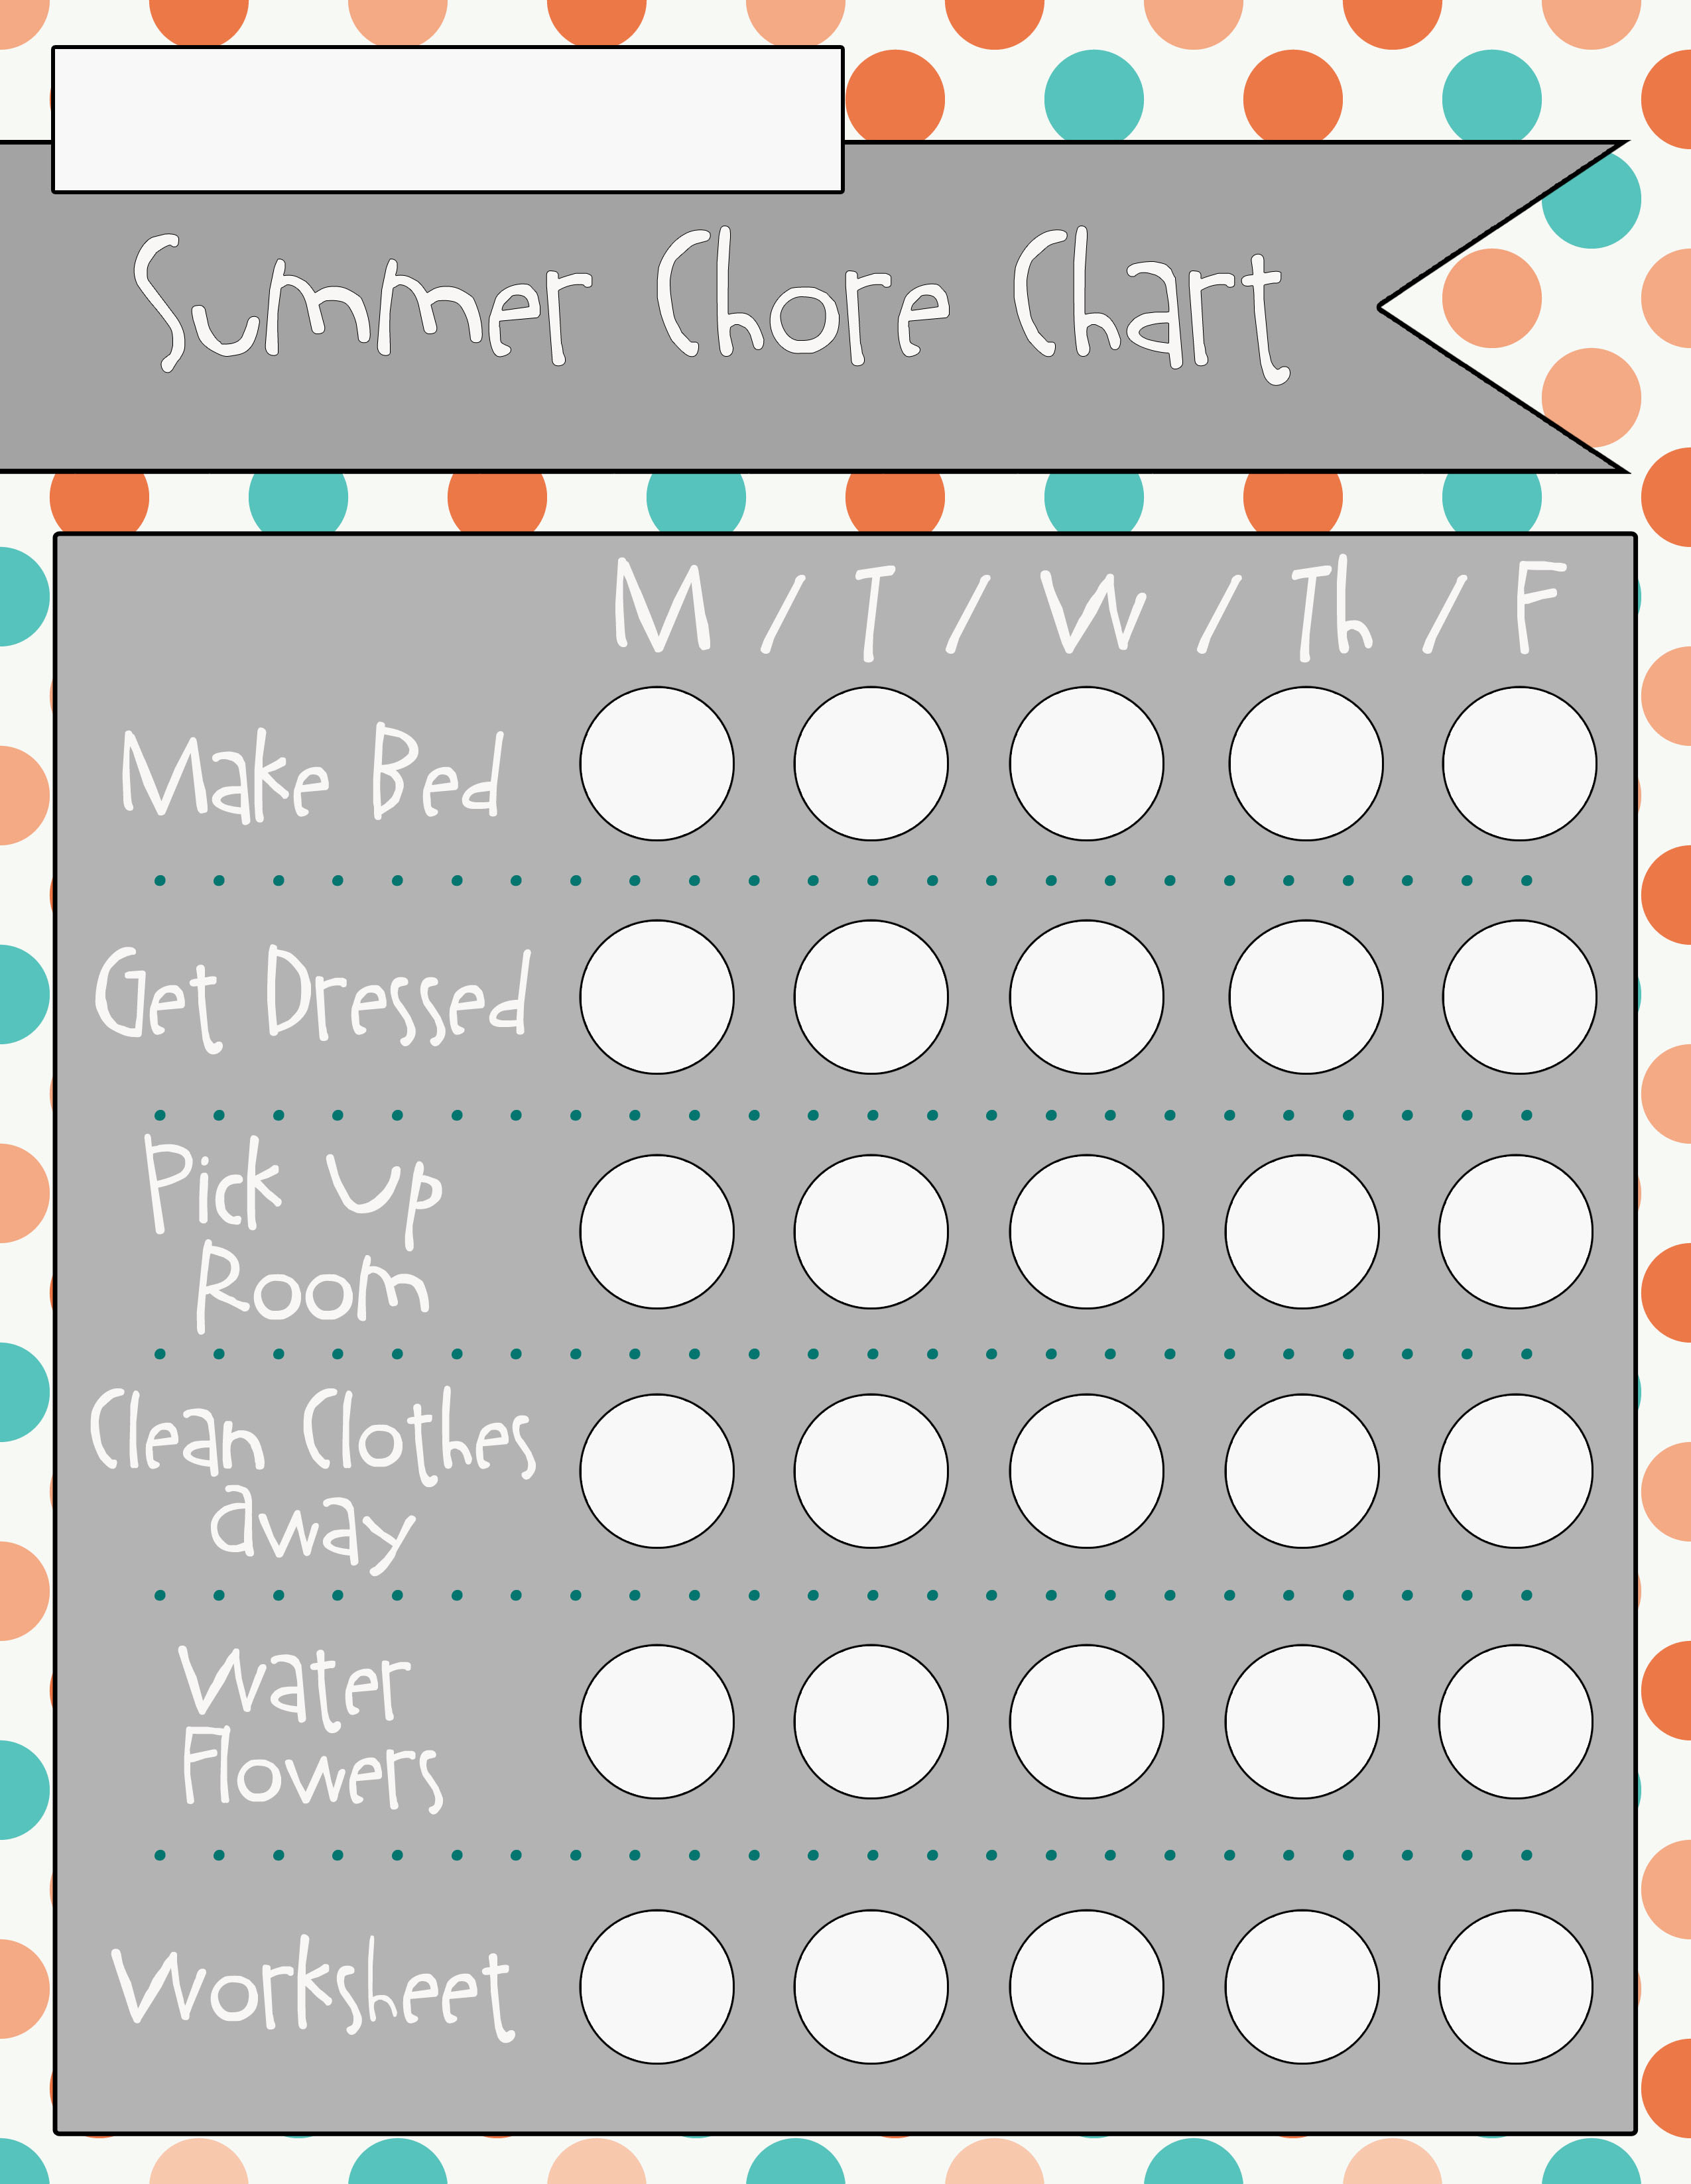 Chore clipart summer. Charts download design completed